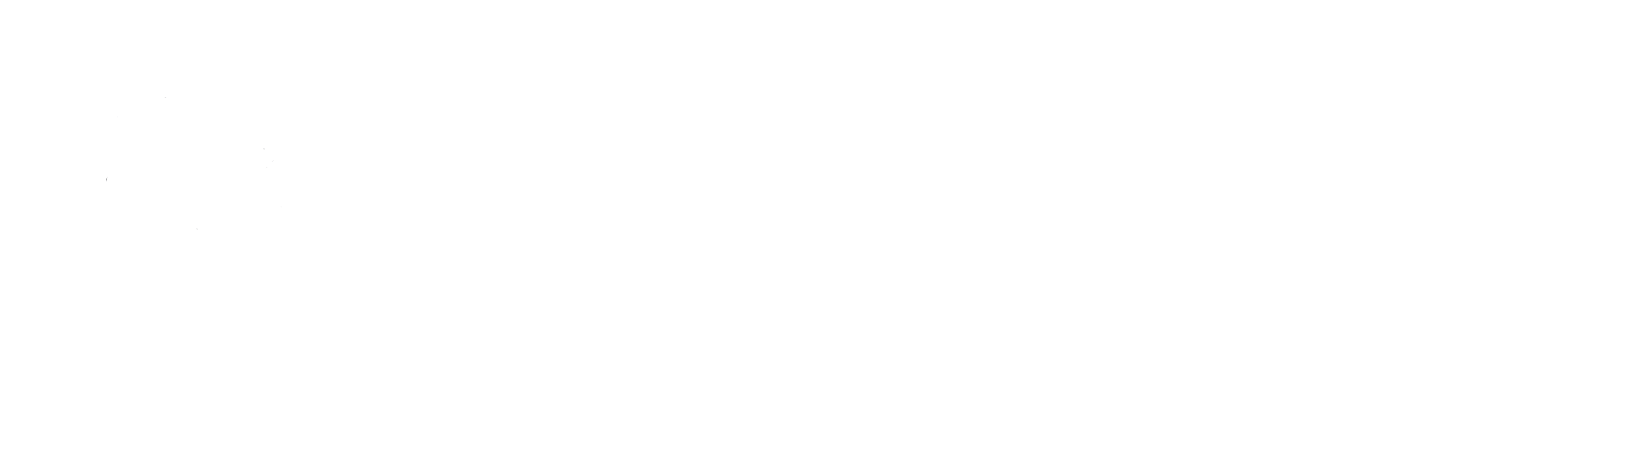 Community of Christ Woodfield Congregation